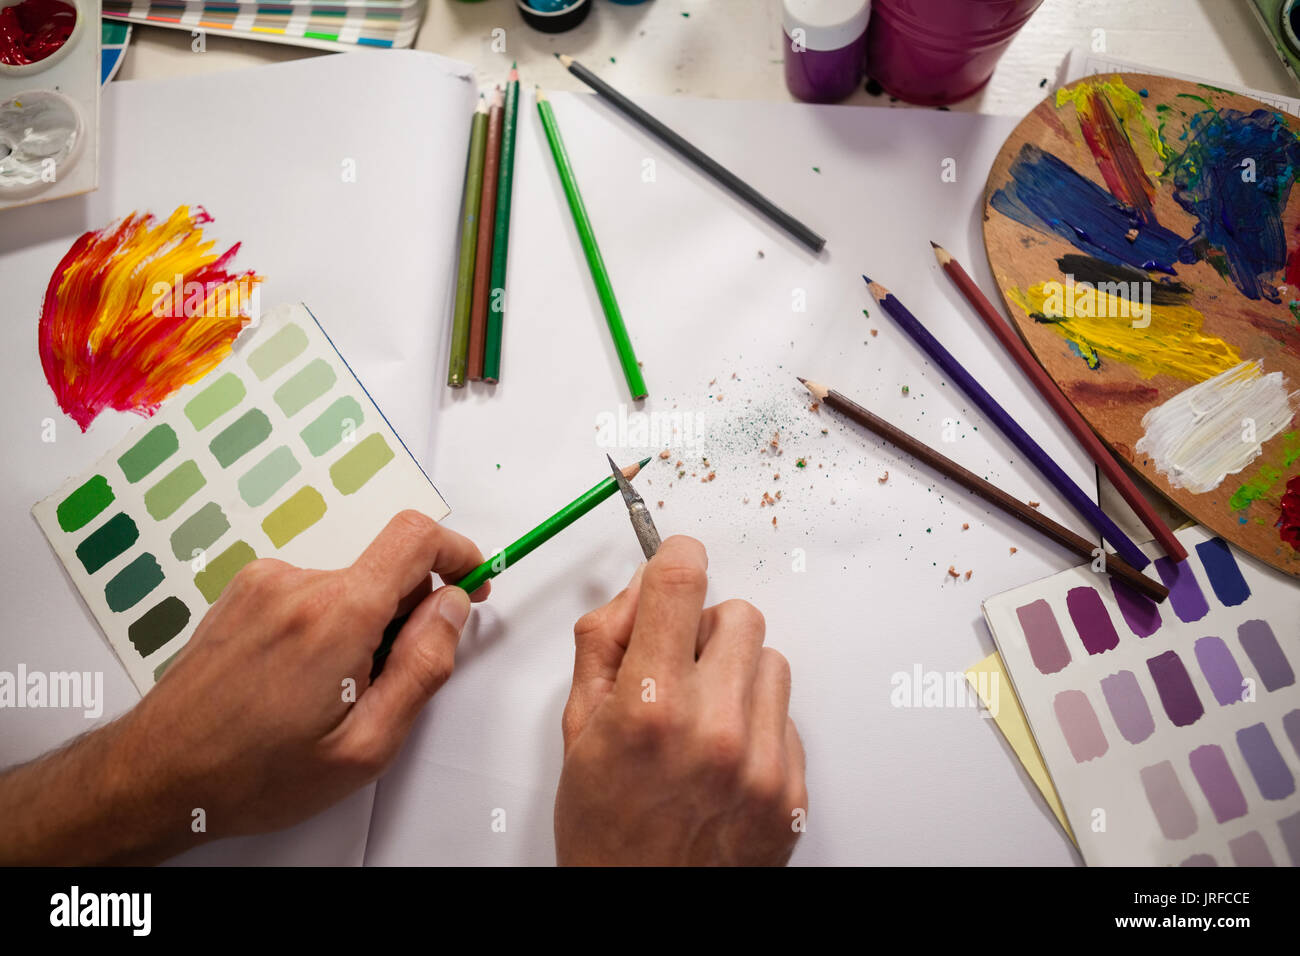 Man sharpening colored pencil in drawing class - Stock Image